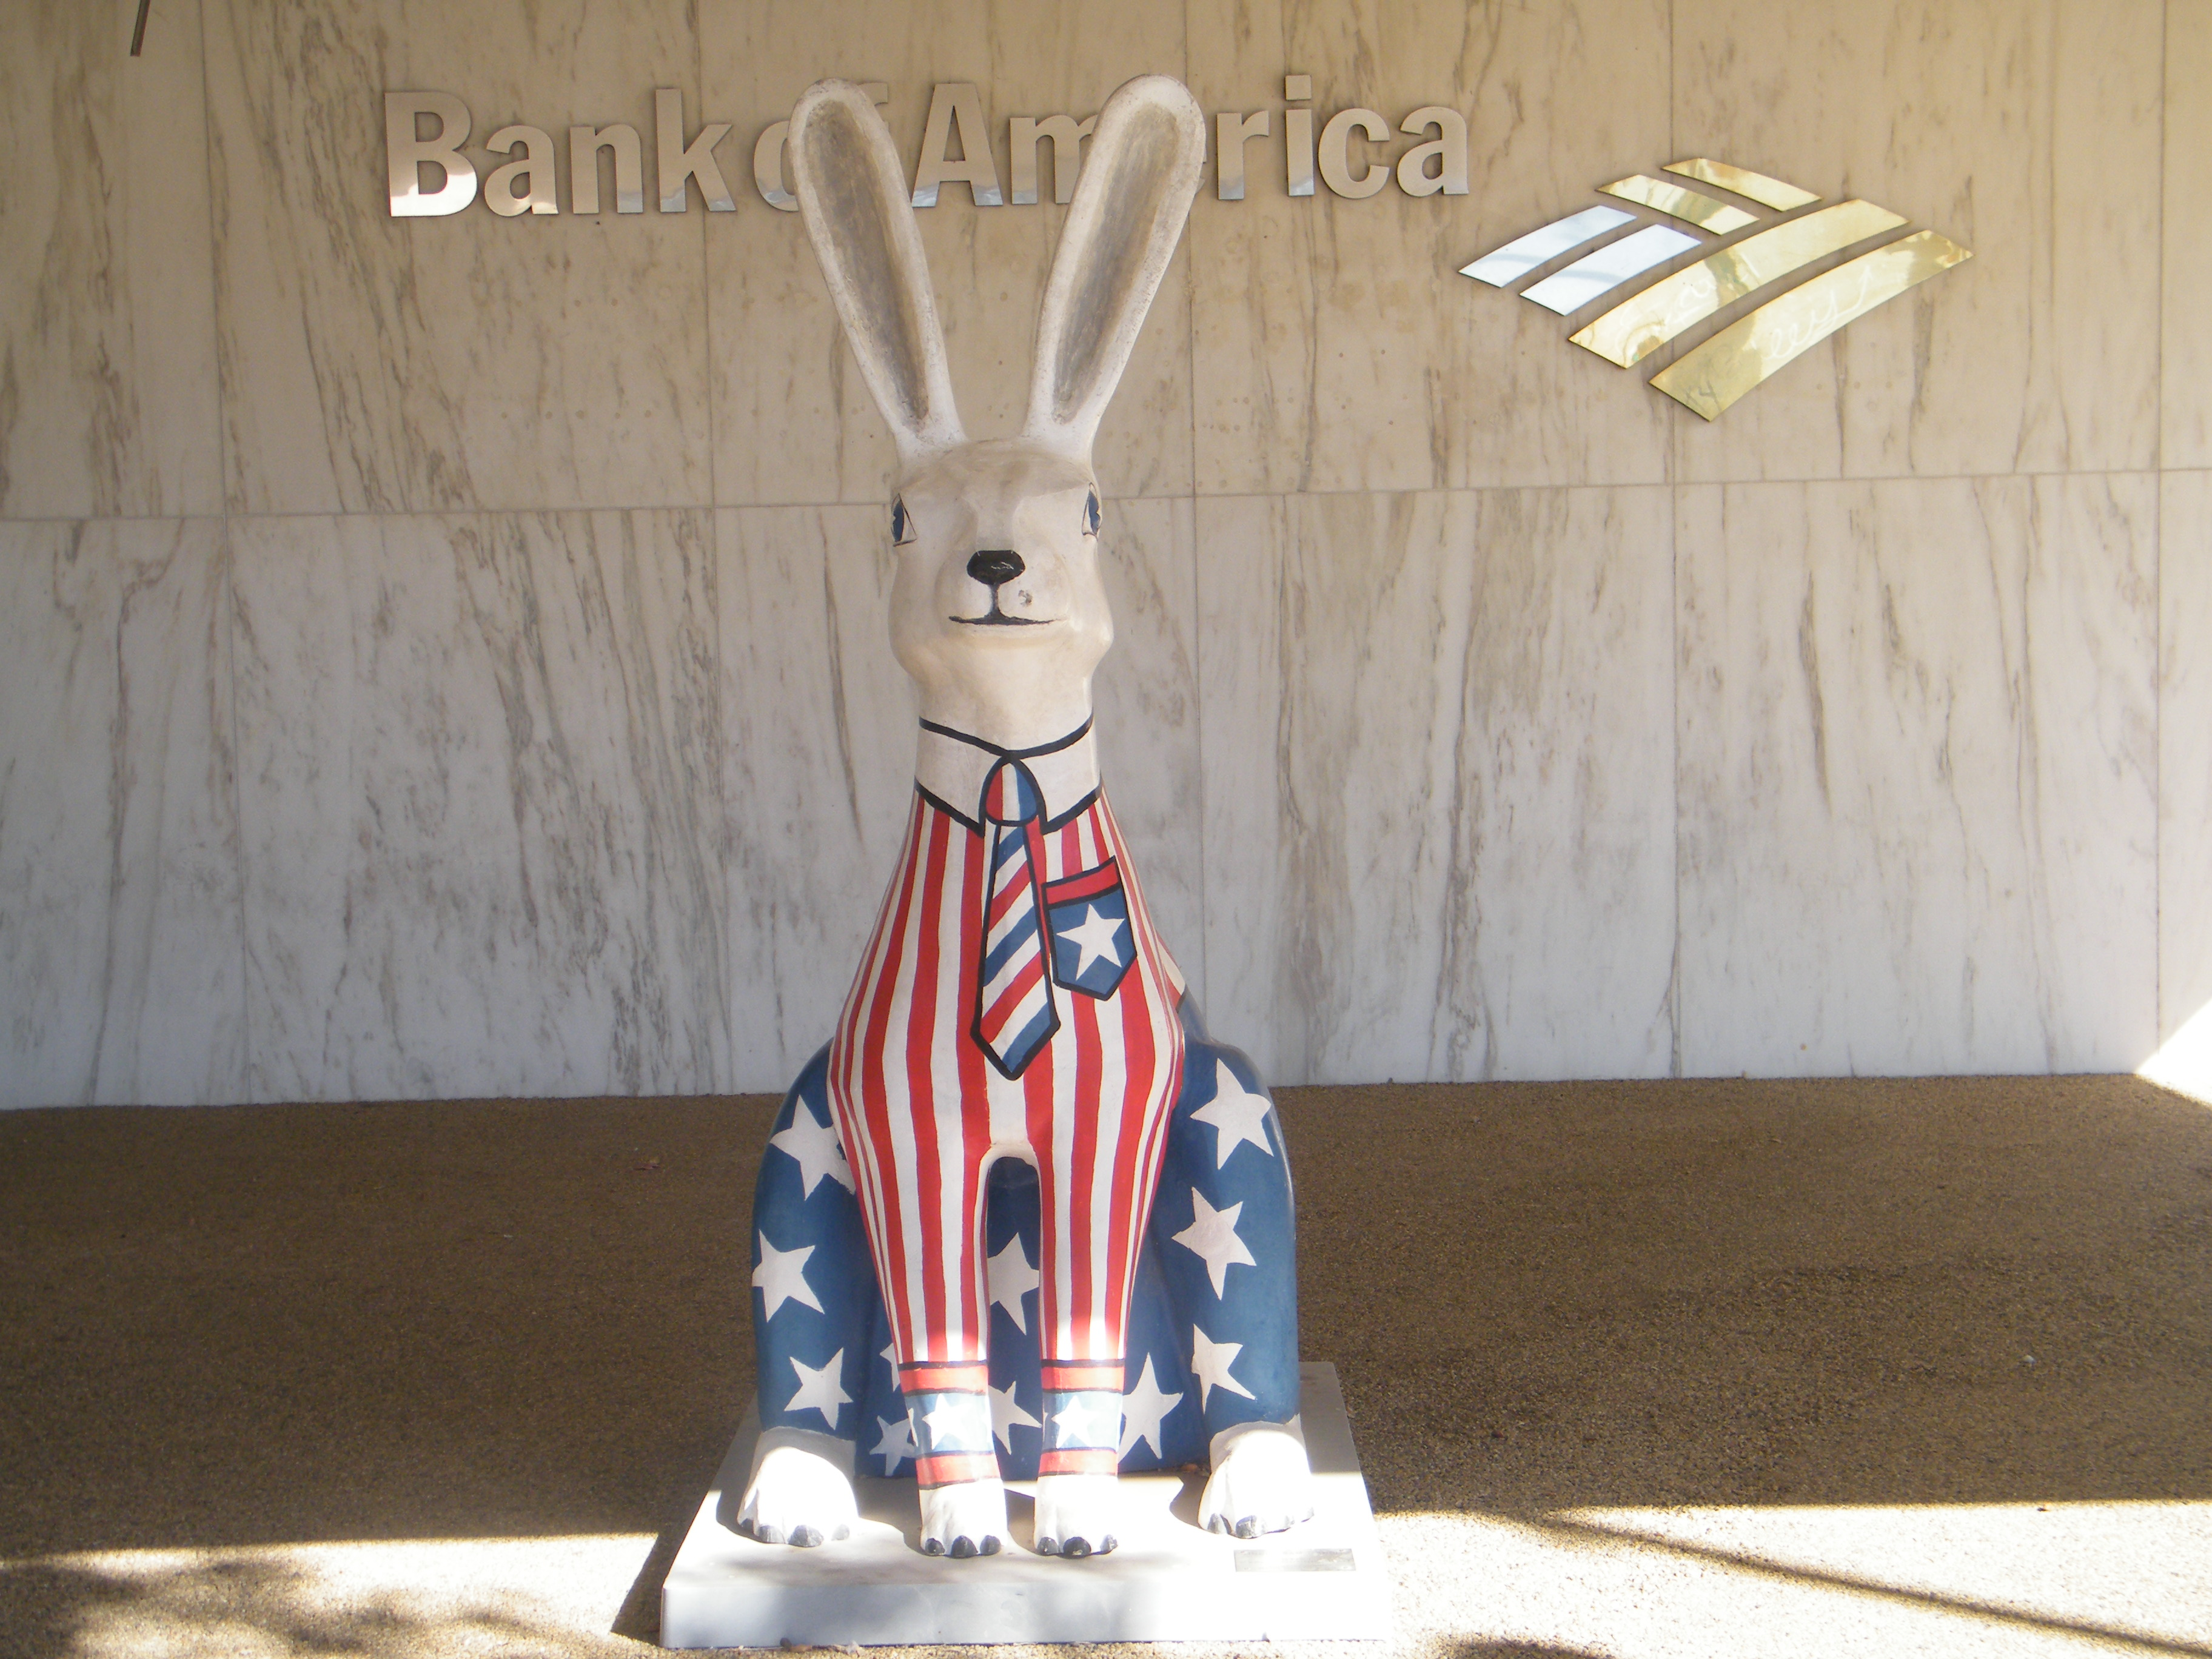 Perkins Cove Ogunquit, Face to face with the Bank of America rabbit. jackrabbit; rabbit ...